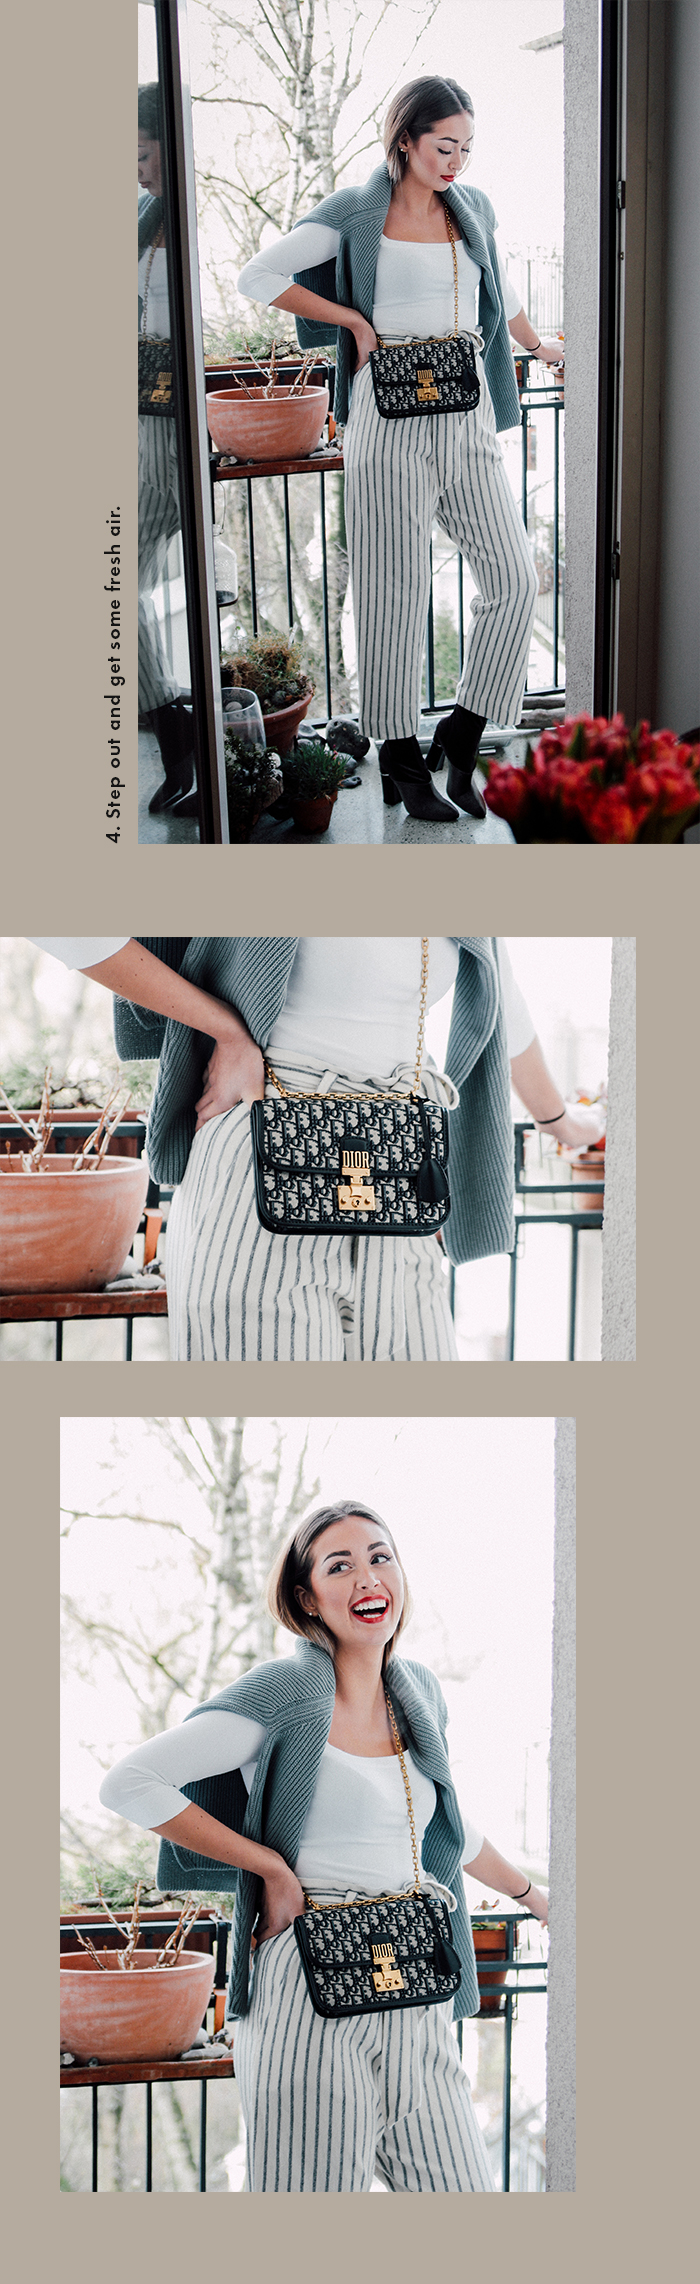 Winter days spent at home: Dior Bag